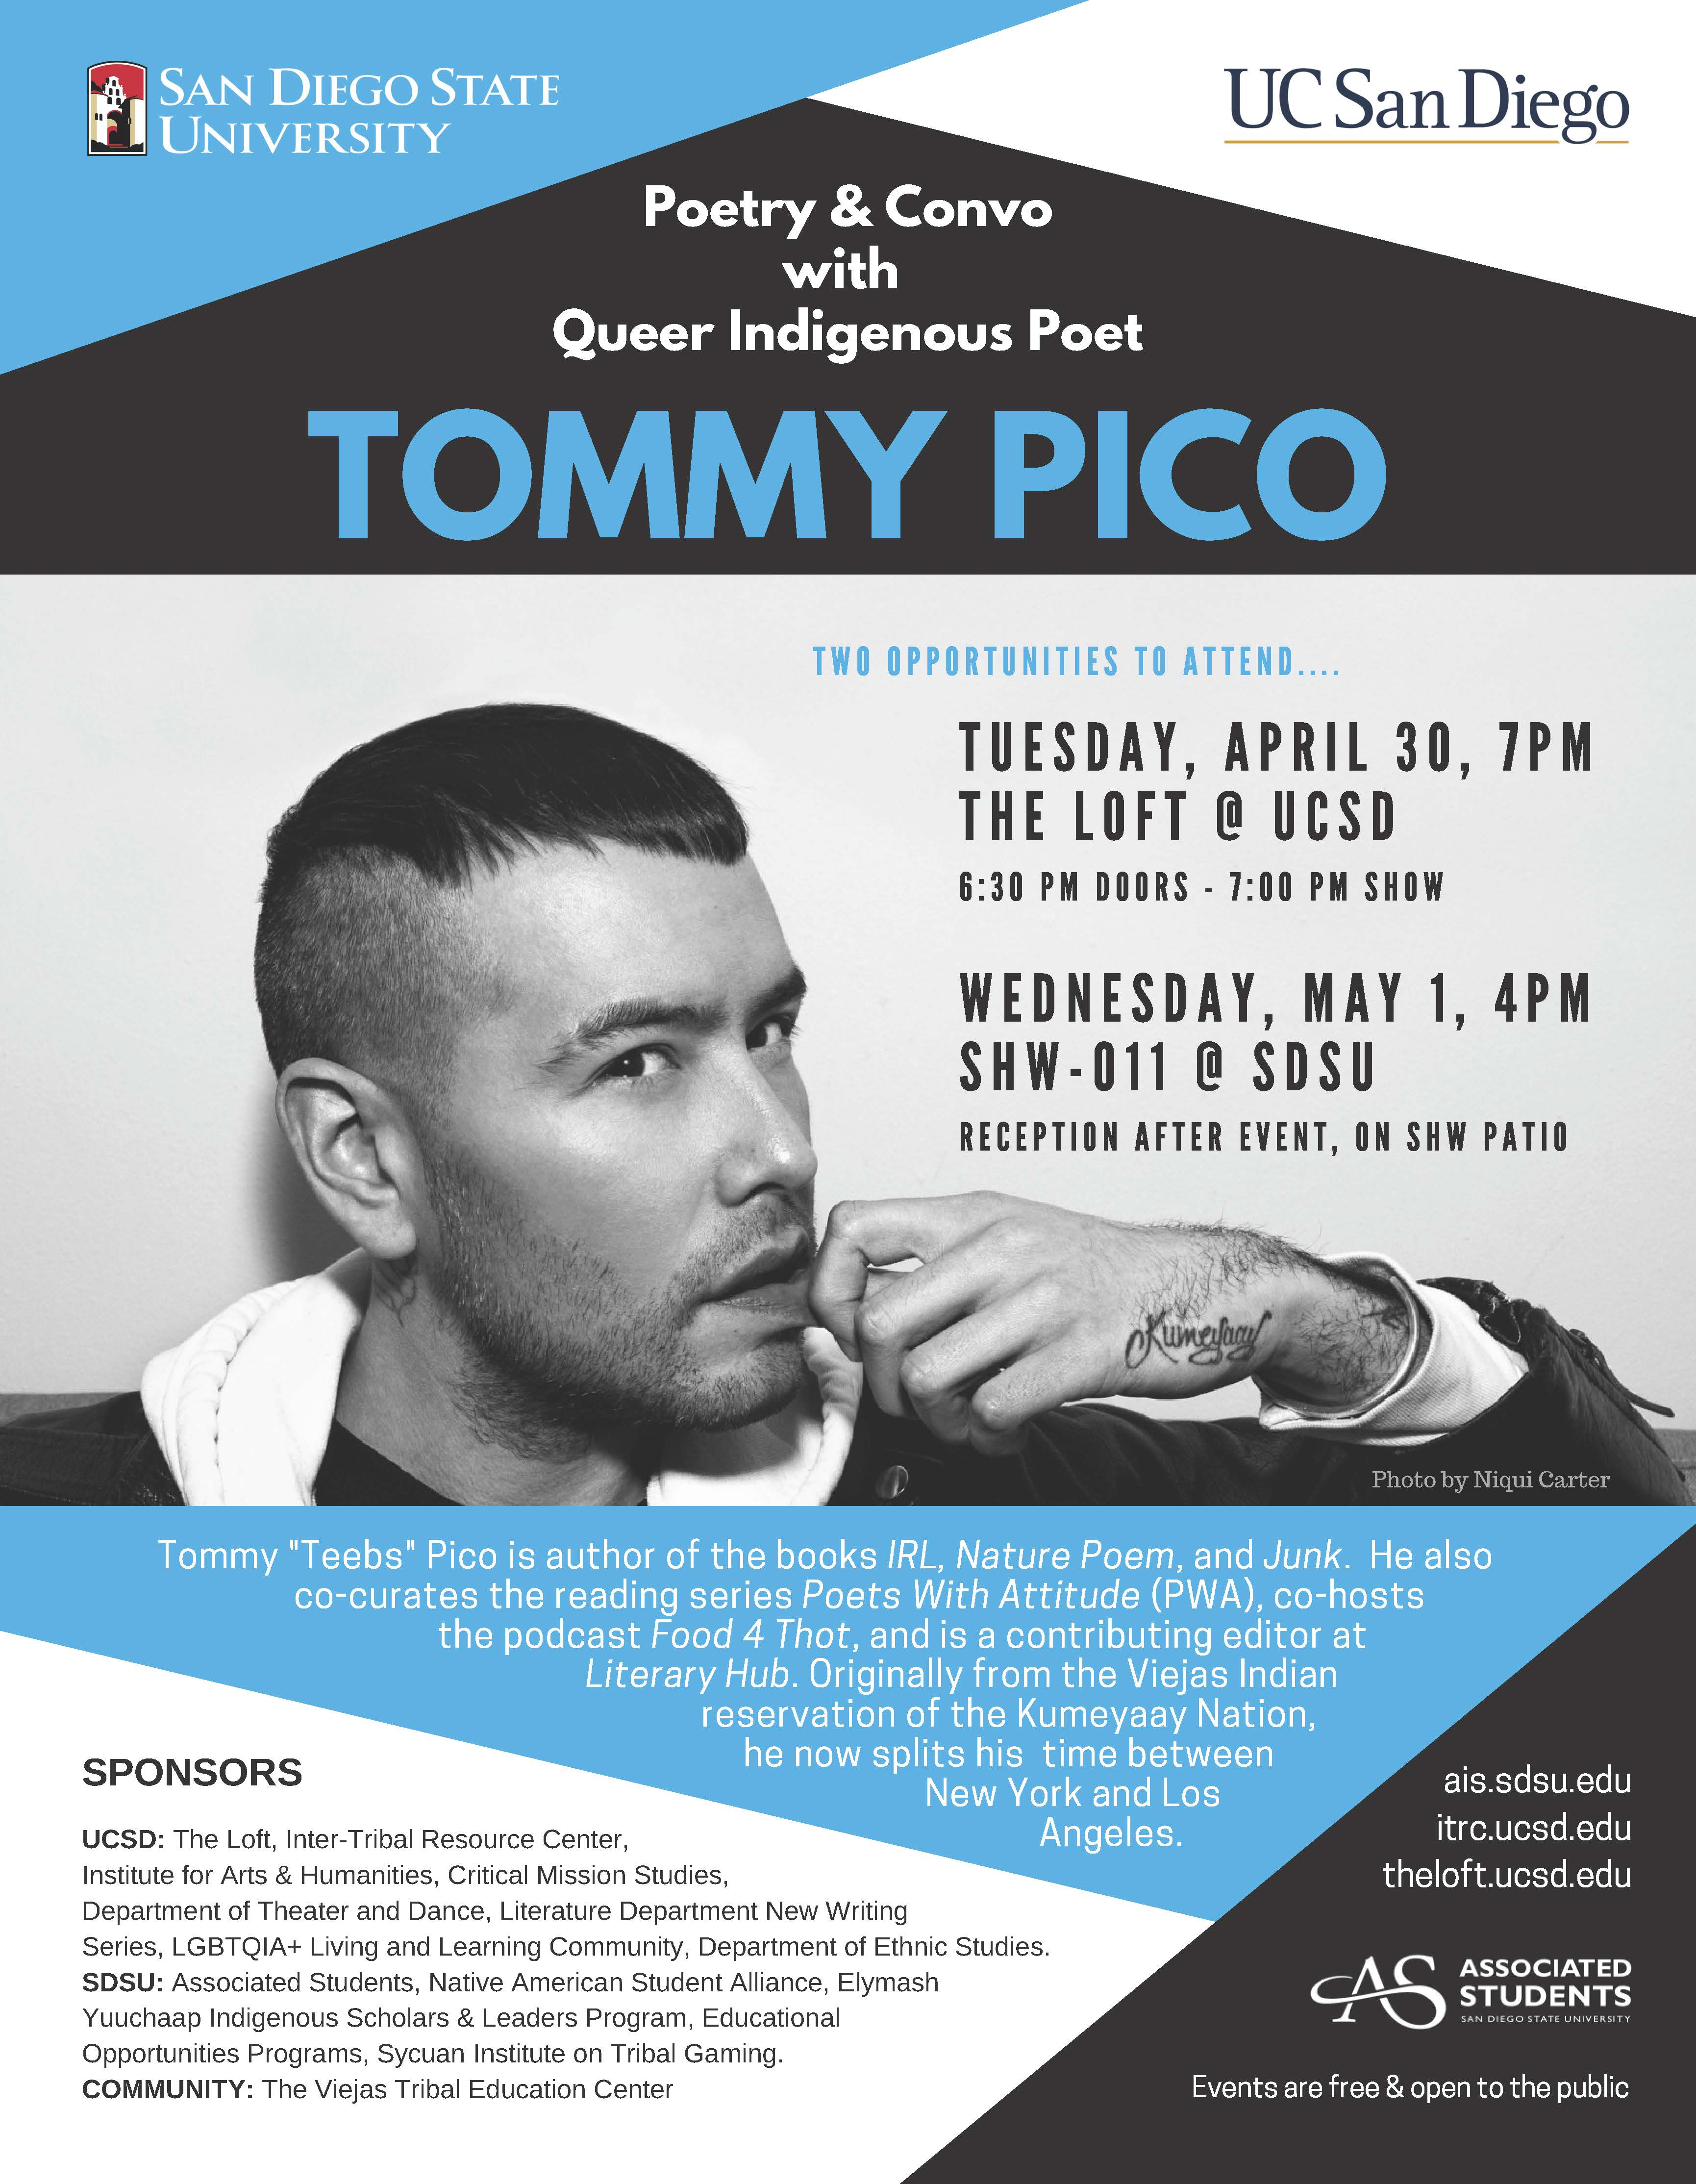 Poetry and Convo with Queer Indigenous Poet Tommy Pico